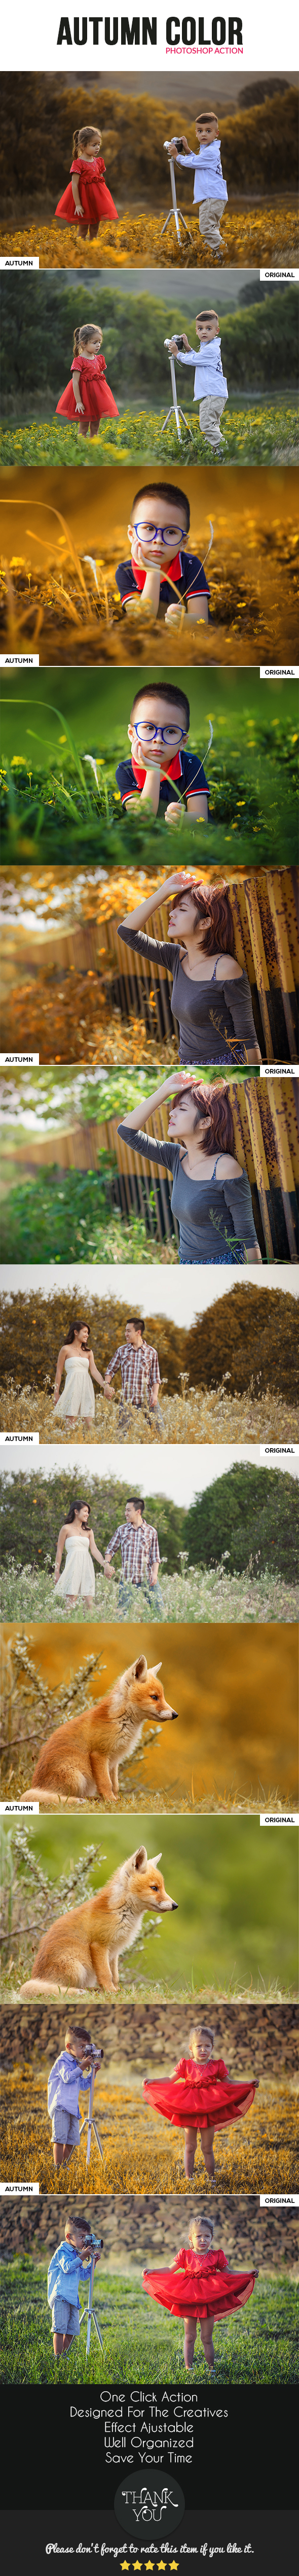 Autumn Color - Photo Effects Actions